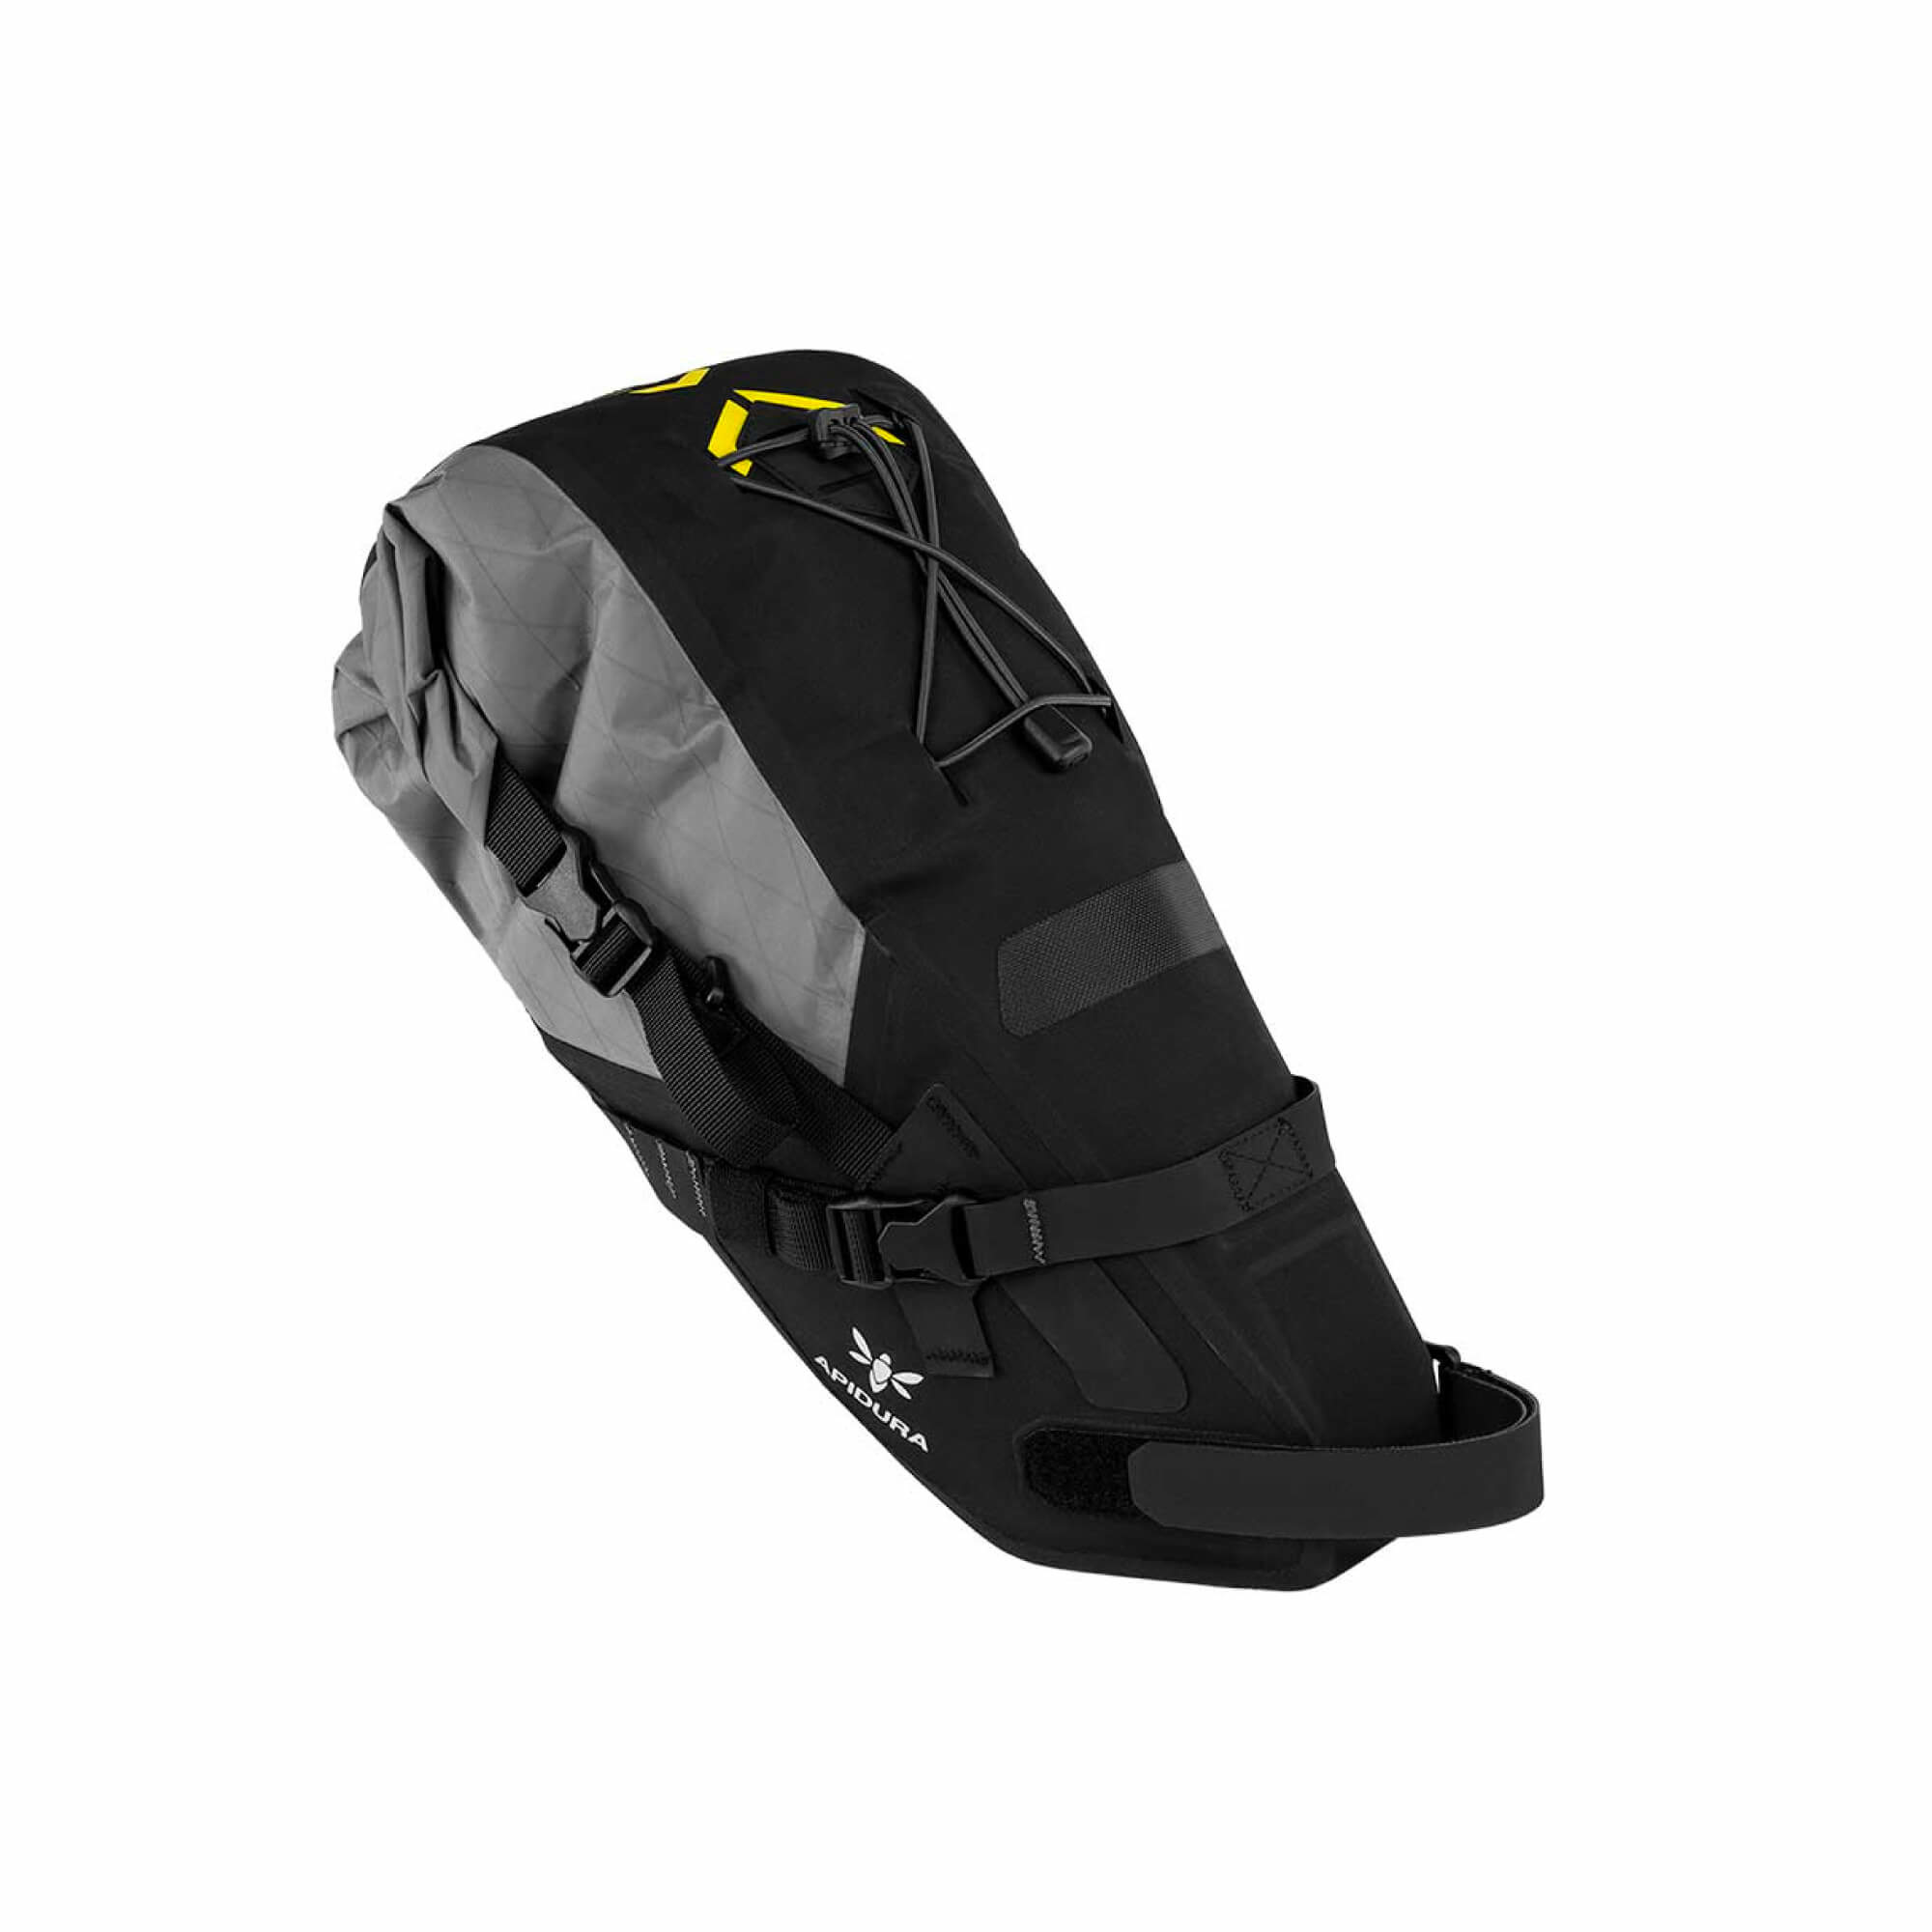 Backcountry2 Saddle Pack 6 L-1